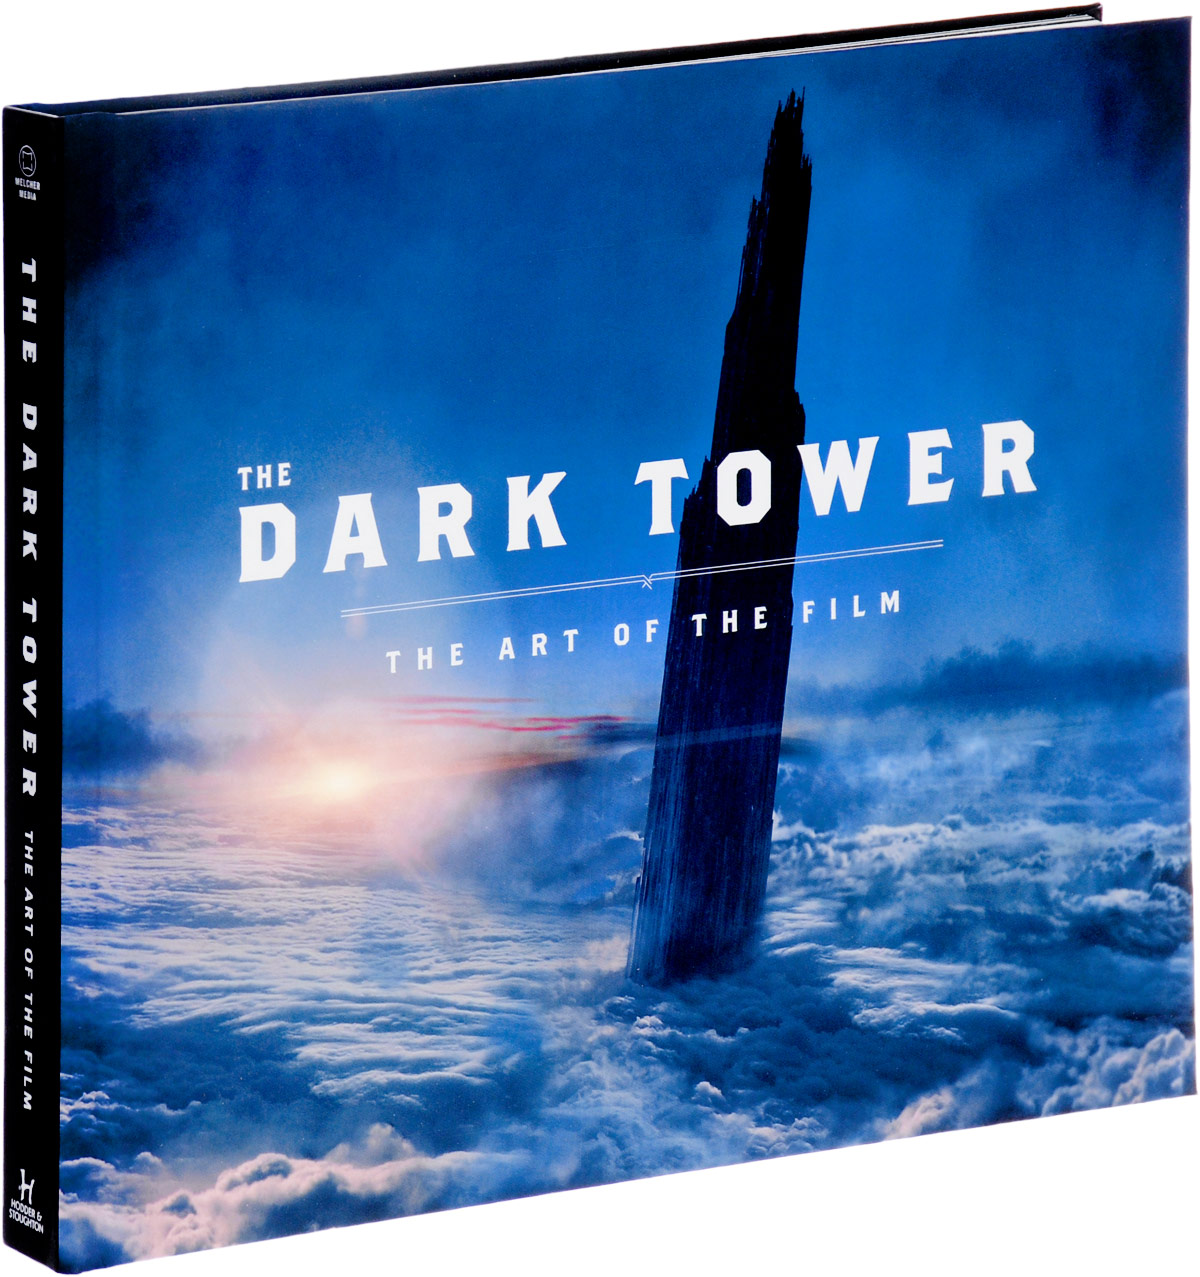 The Dark Tower: The Art of the Film 196pcs building blocks urban engineering team excavator modeling design